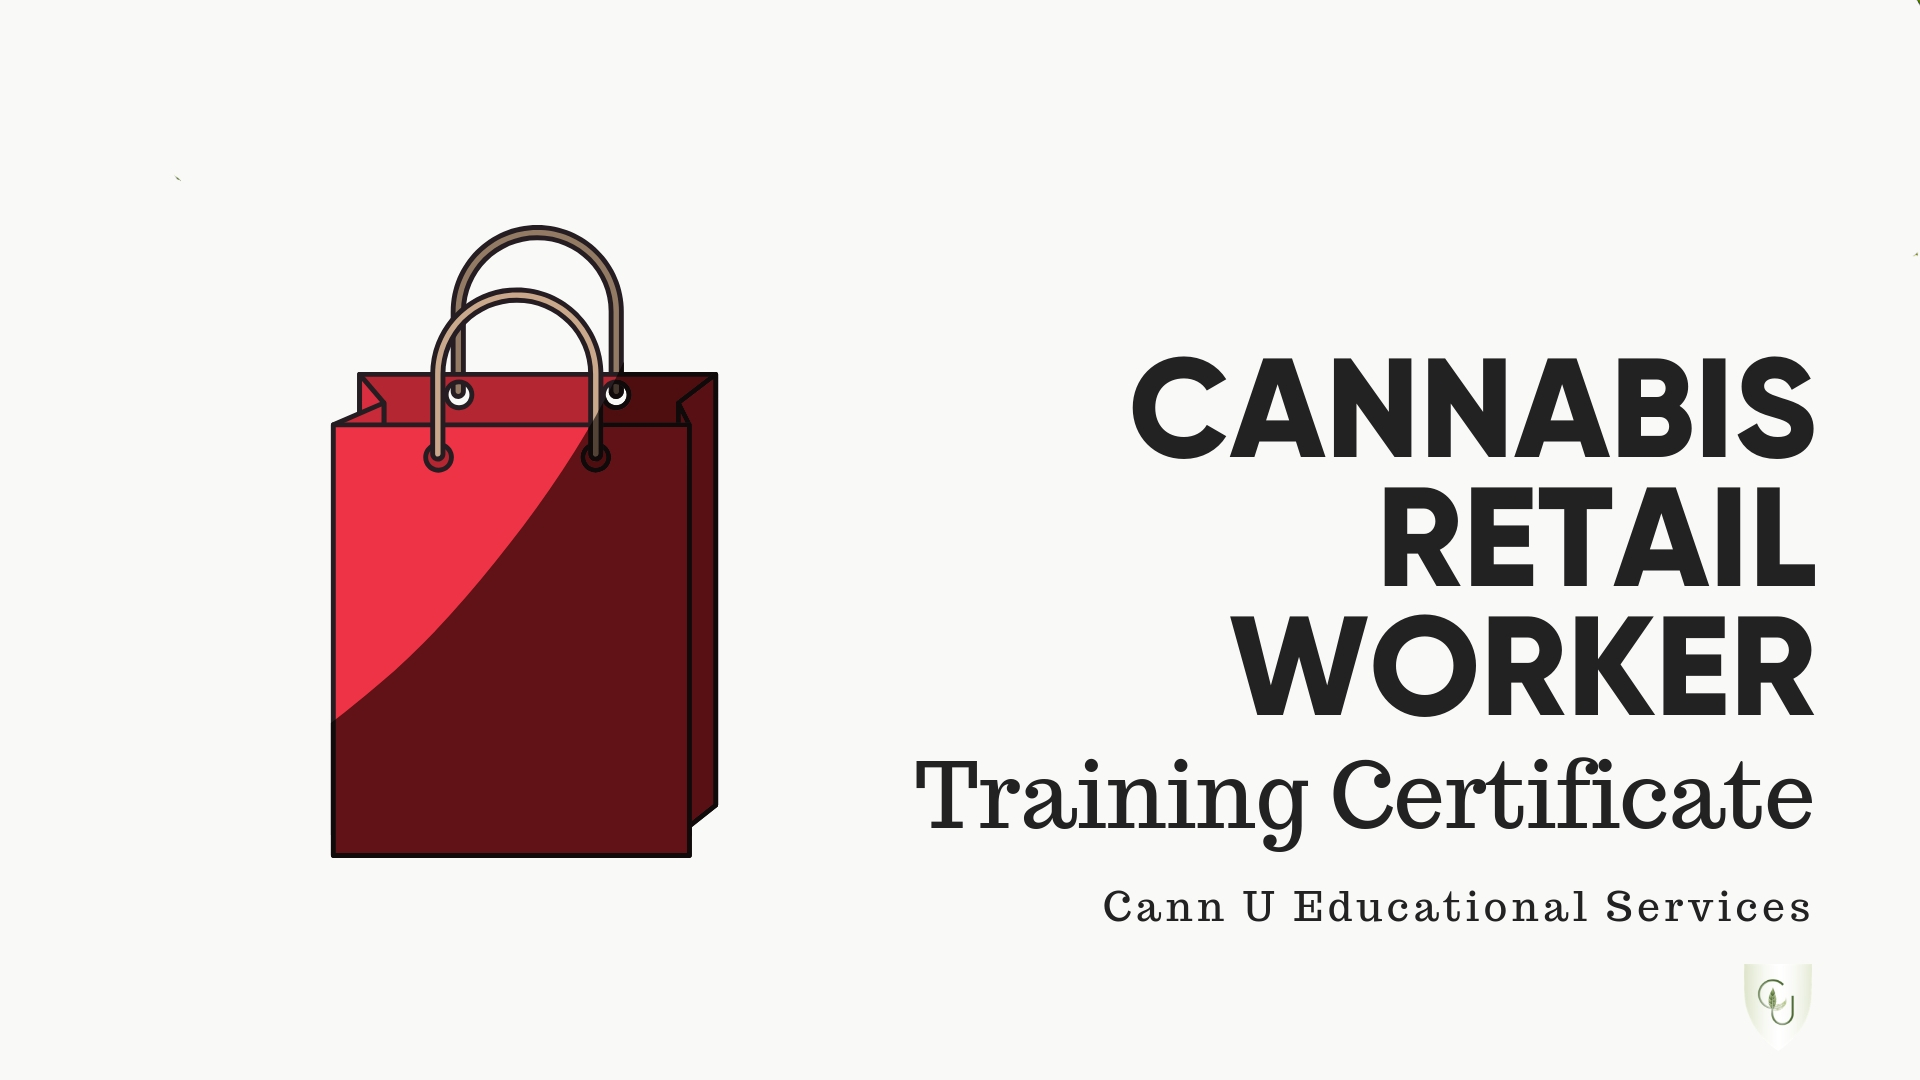 Cannabis Retail Worker Training Certificate - $299 CADComprehensive cannabis education and certification to help you prepare for an exciting career as a cannabis retail store worker.14 modules and downloadable resources